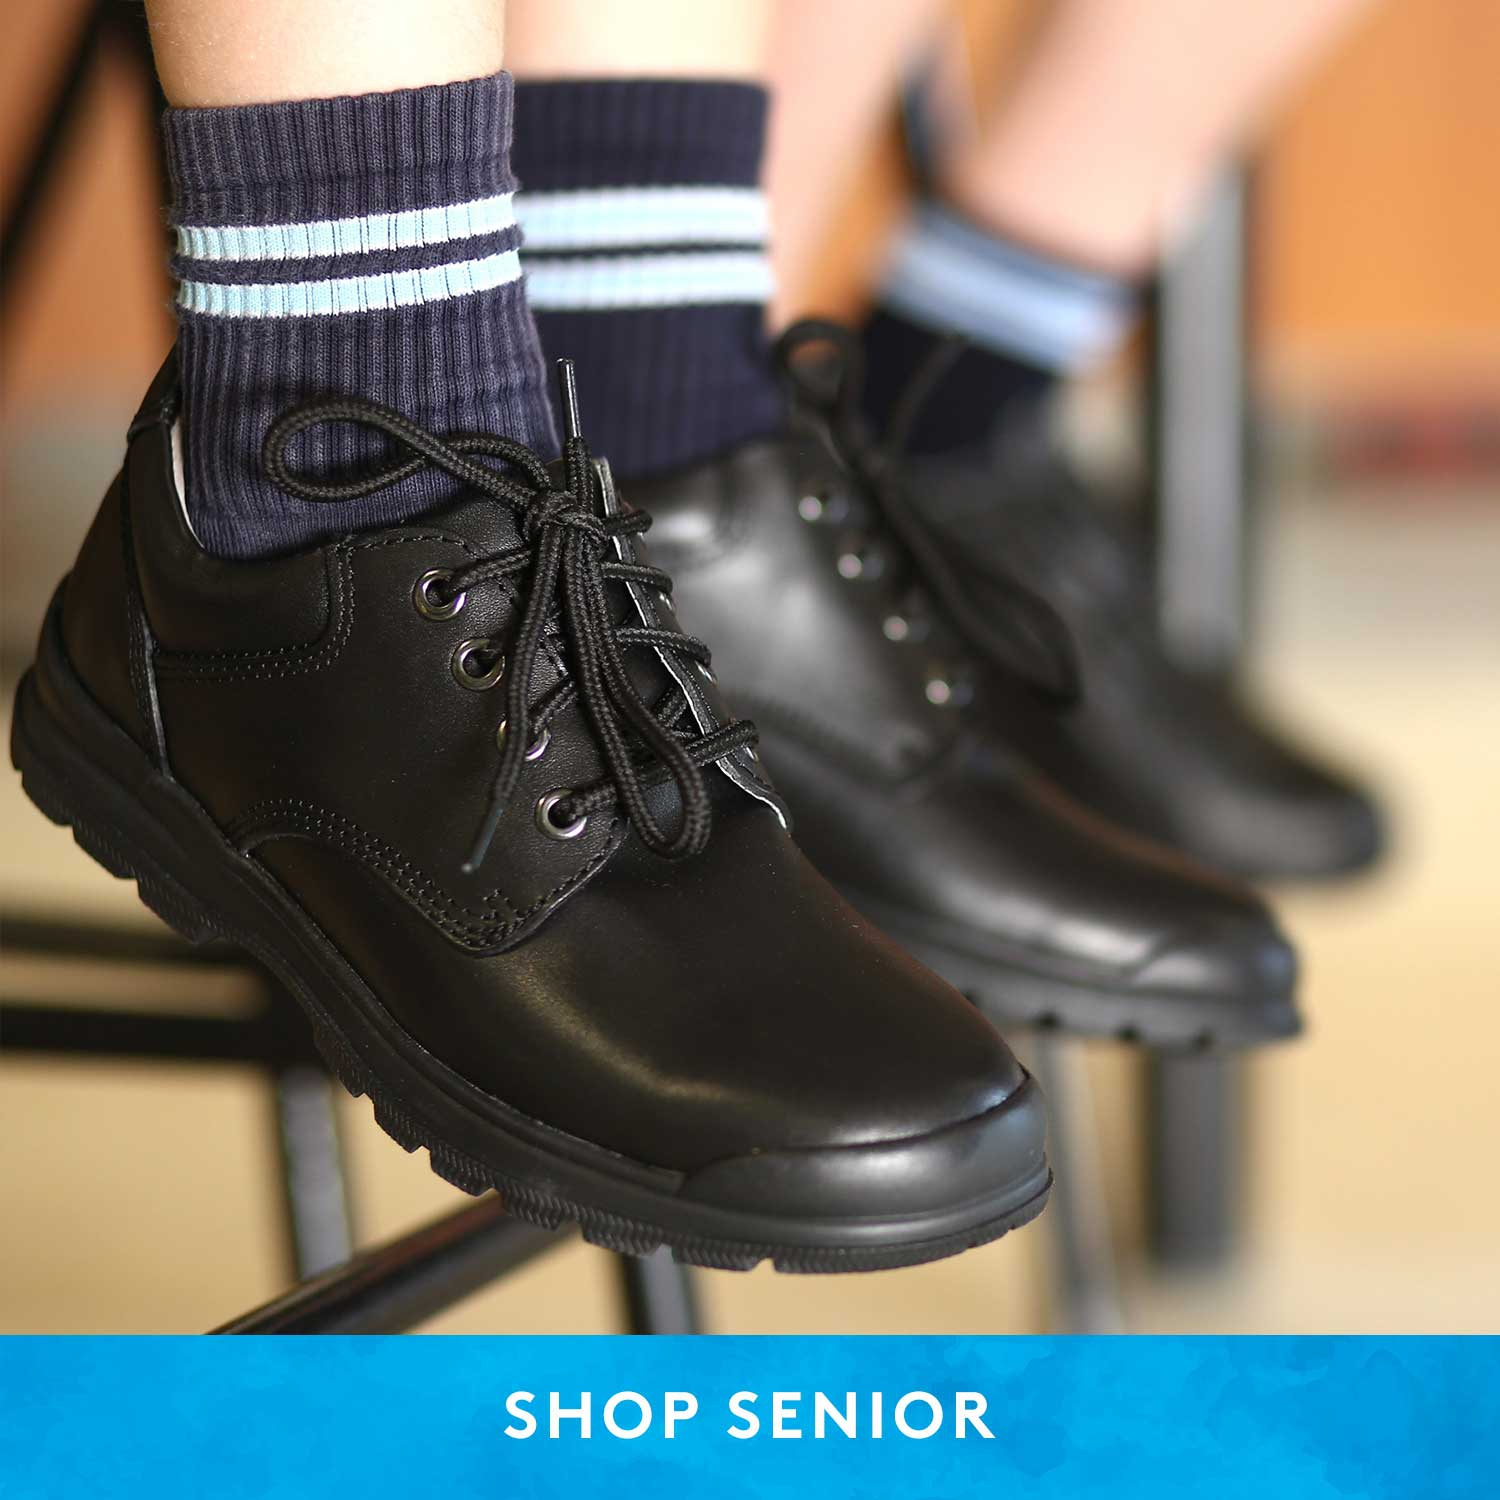 Senior School Shoes